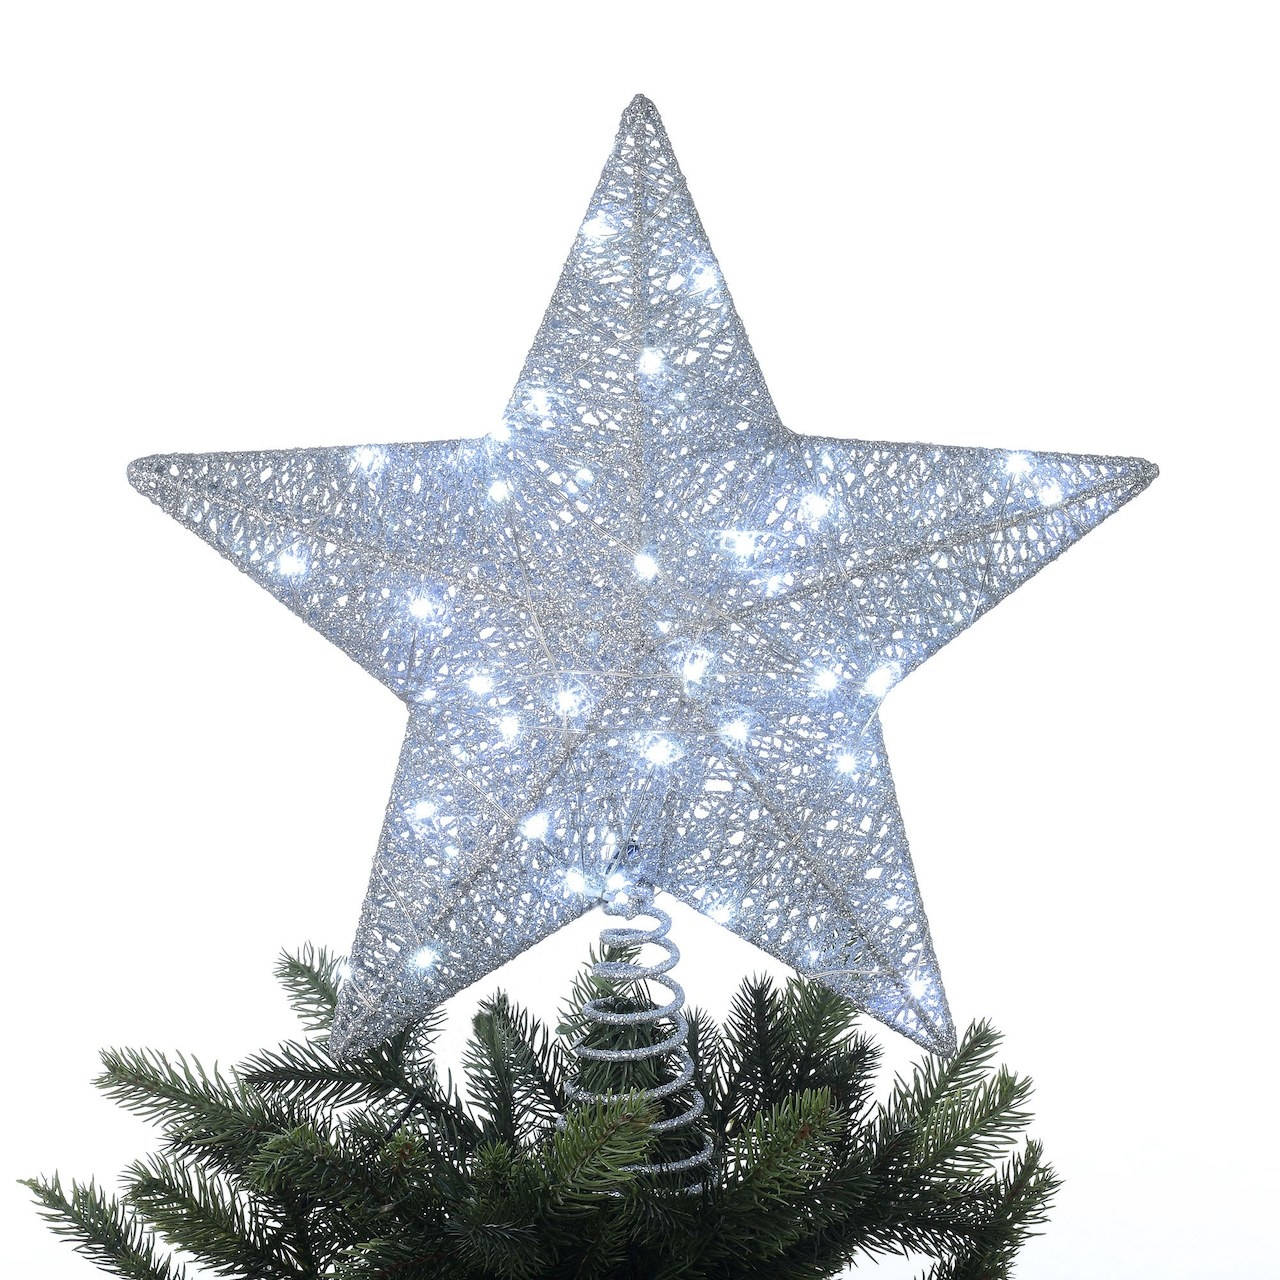 The star with its lights on, on top of a Christmas tree